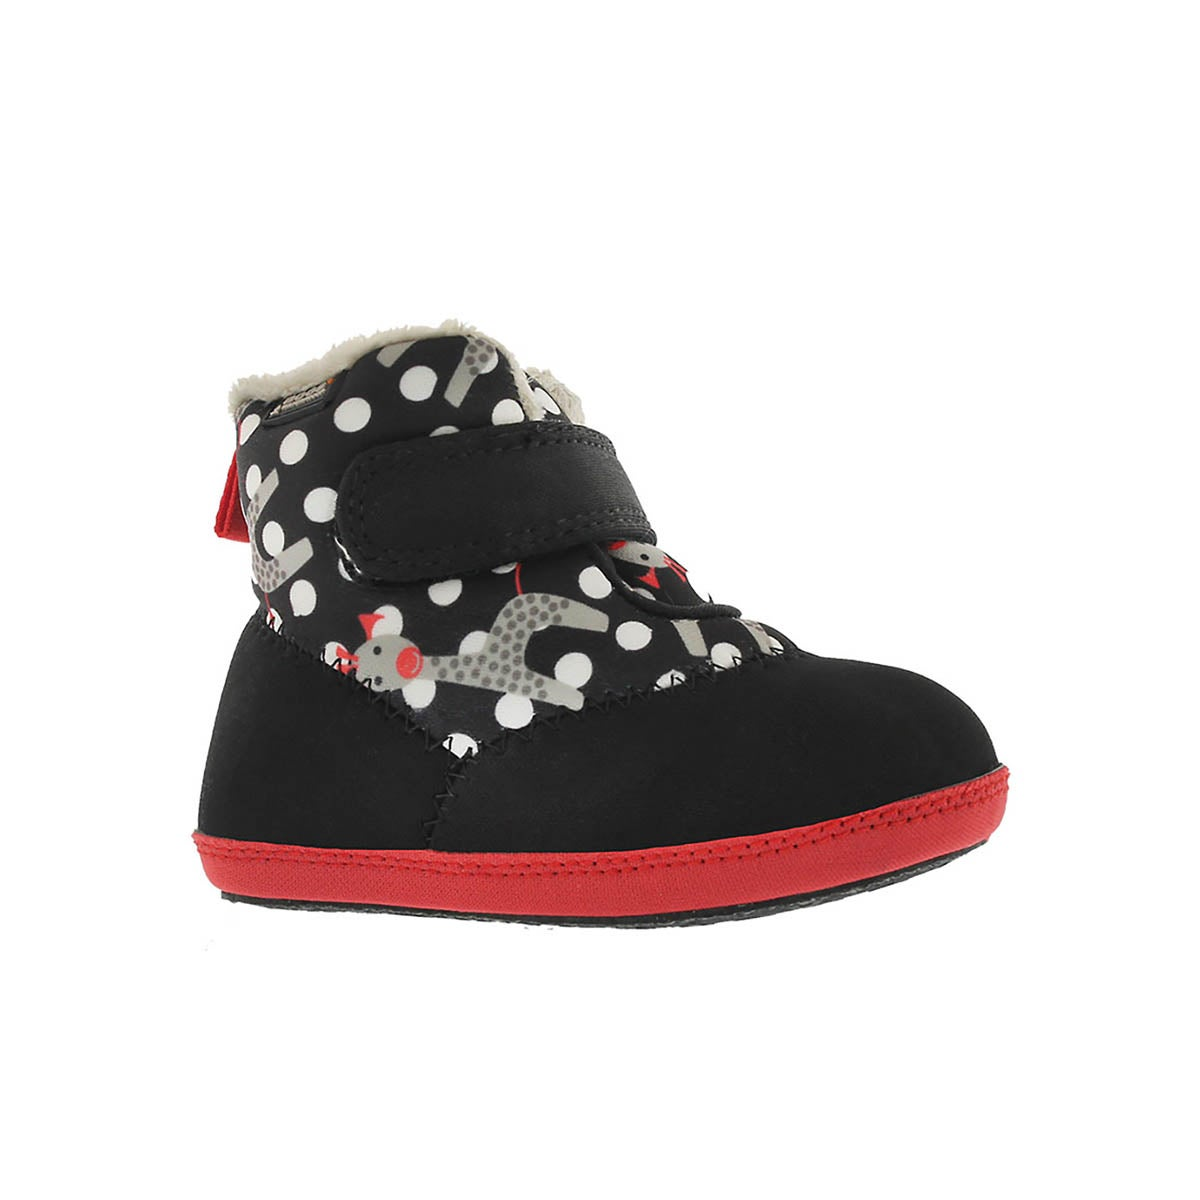 Infants' ELLIOT GIRAFFE blk multi waterproof boots